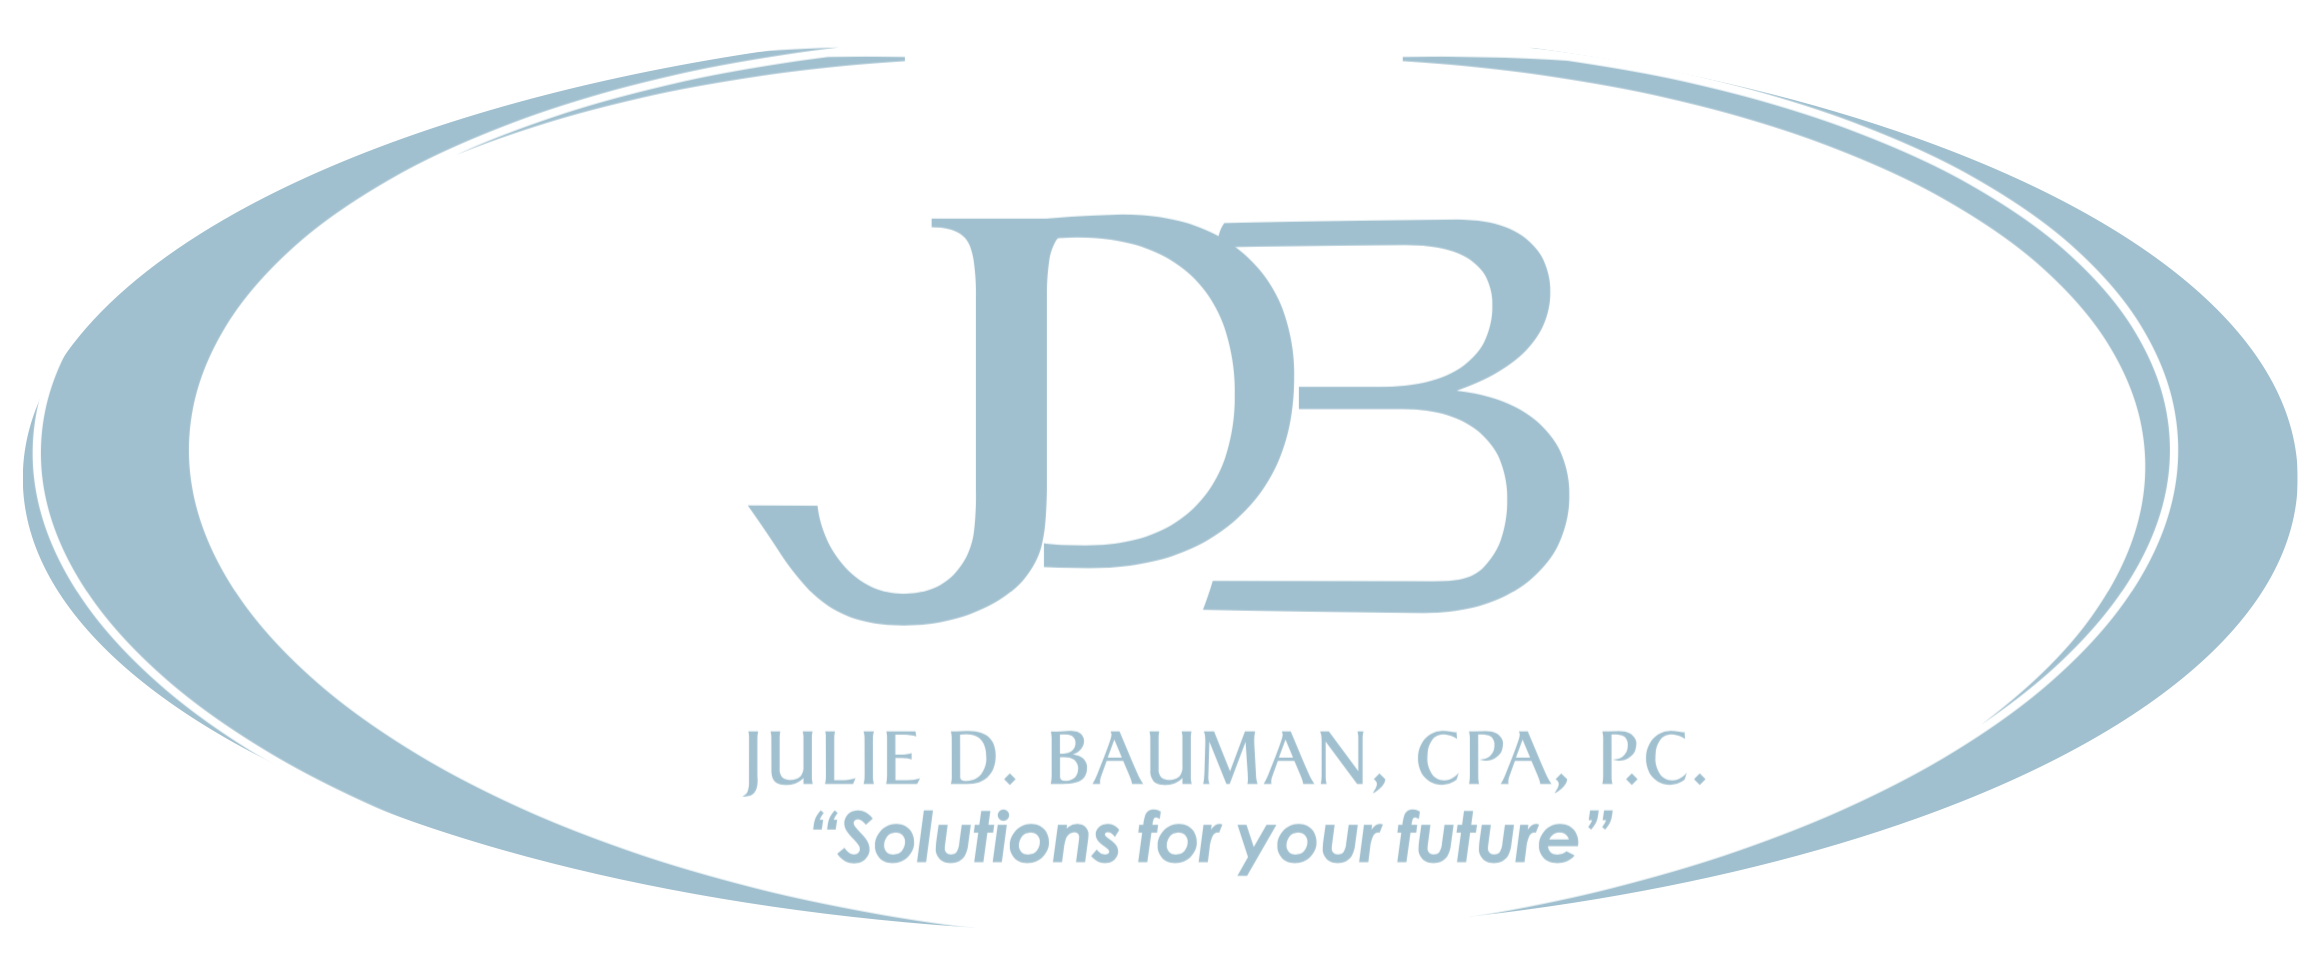 Virtual Accounting Firm | Online Payroll Page | Julie D. Bauman, CPA, PC